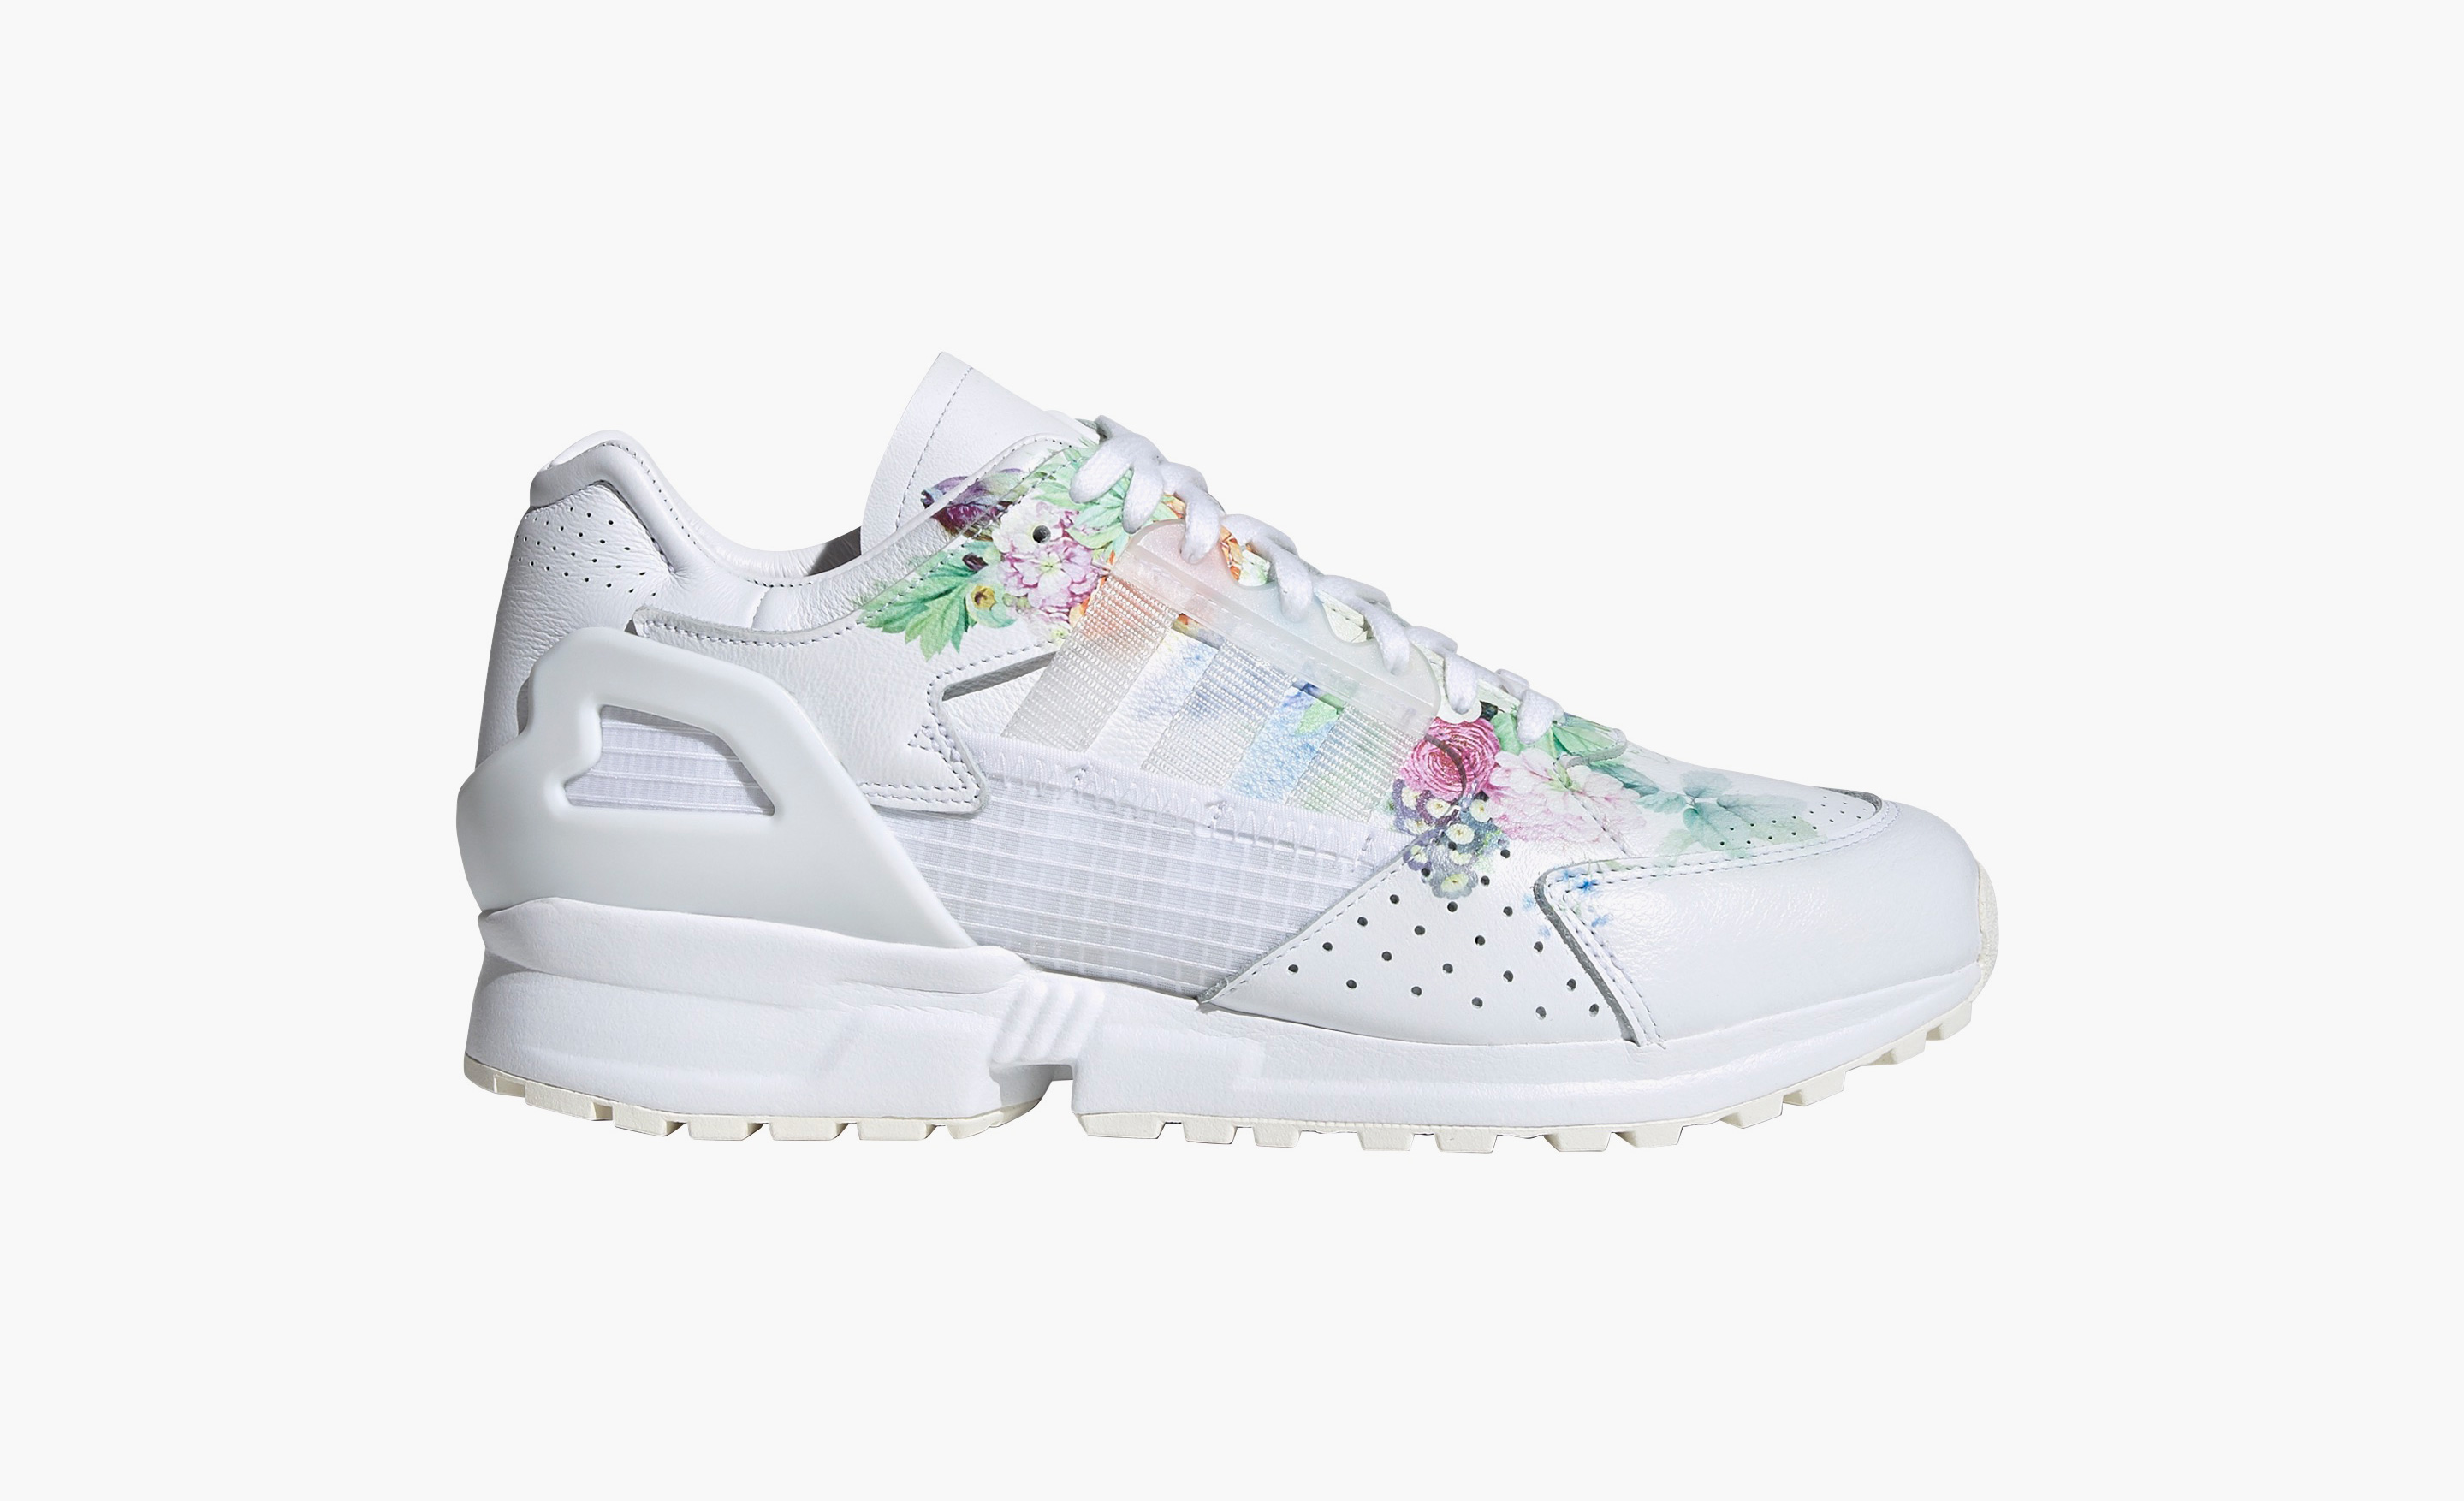 Sneakers Adidas Messein ZX 10,000 C